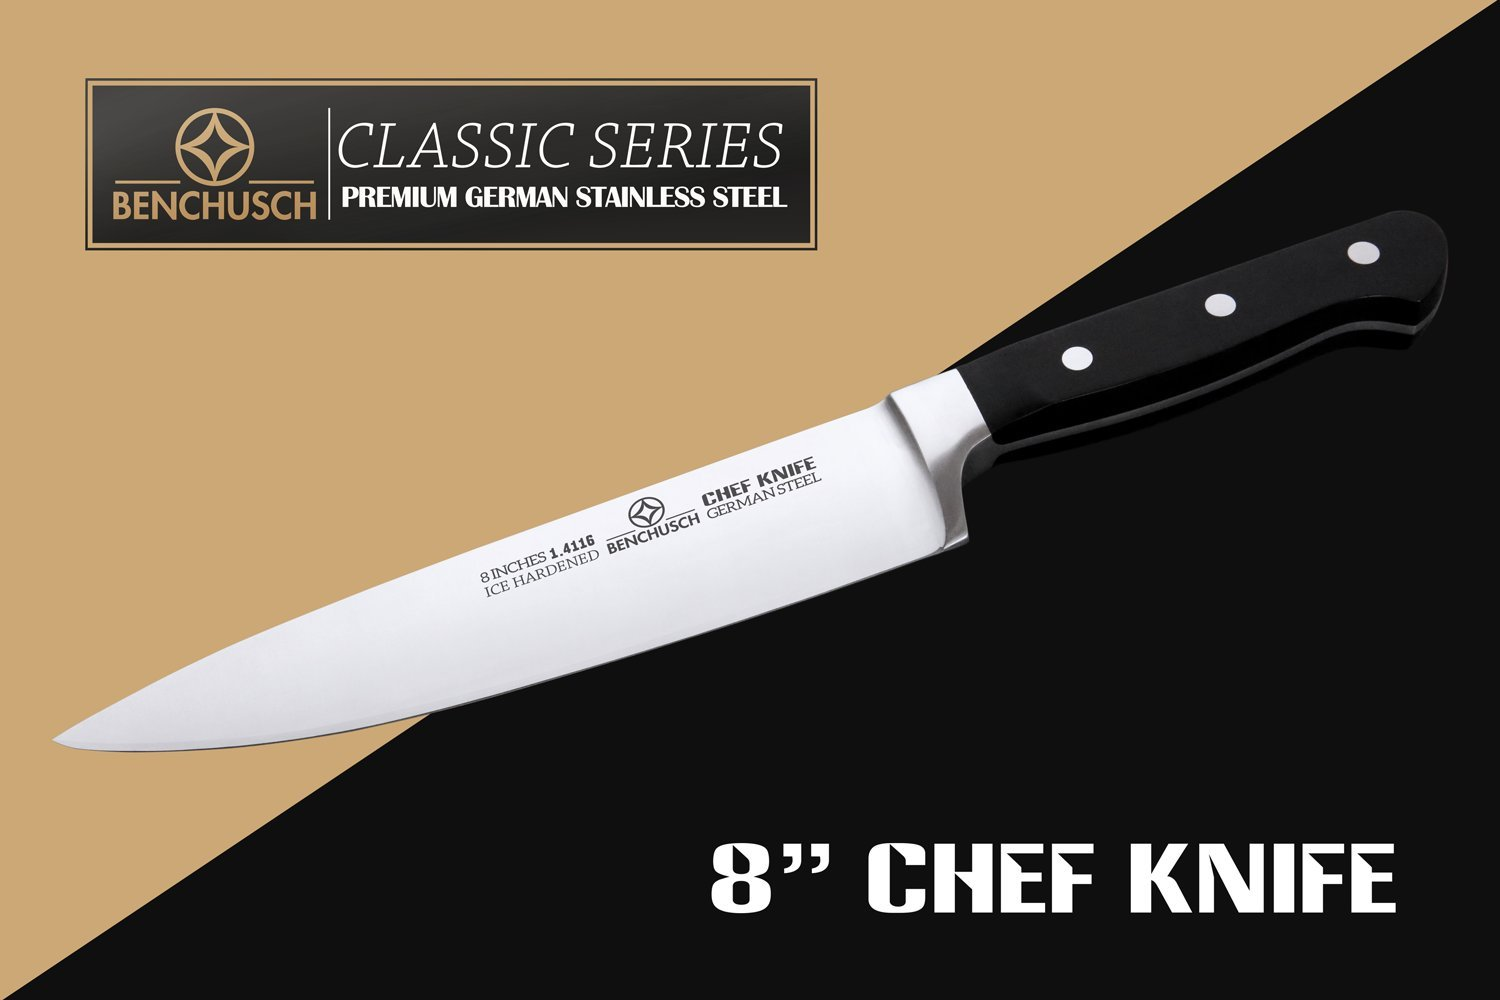 amazon com benchusch professional 8 inch chef knife classic